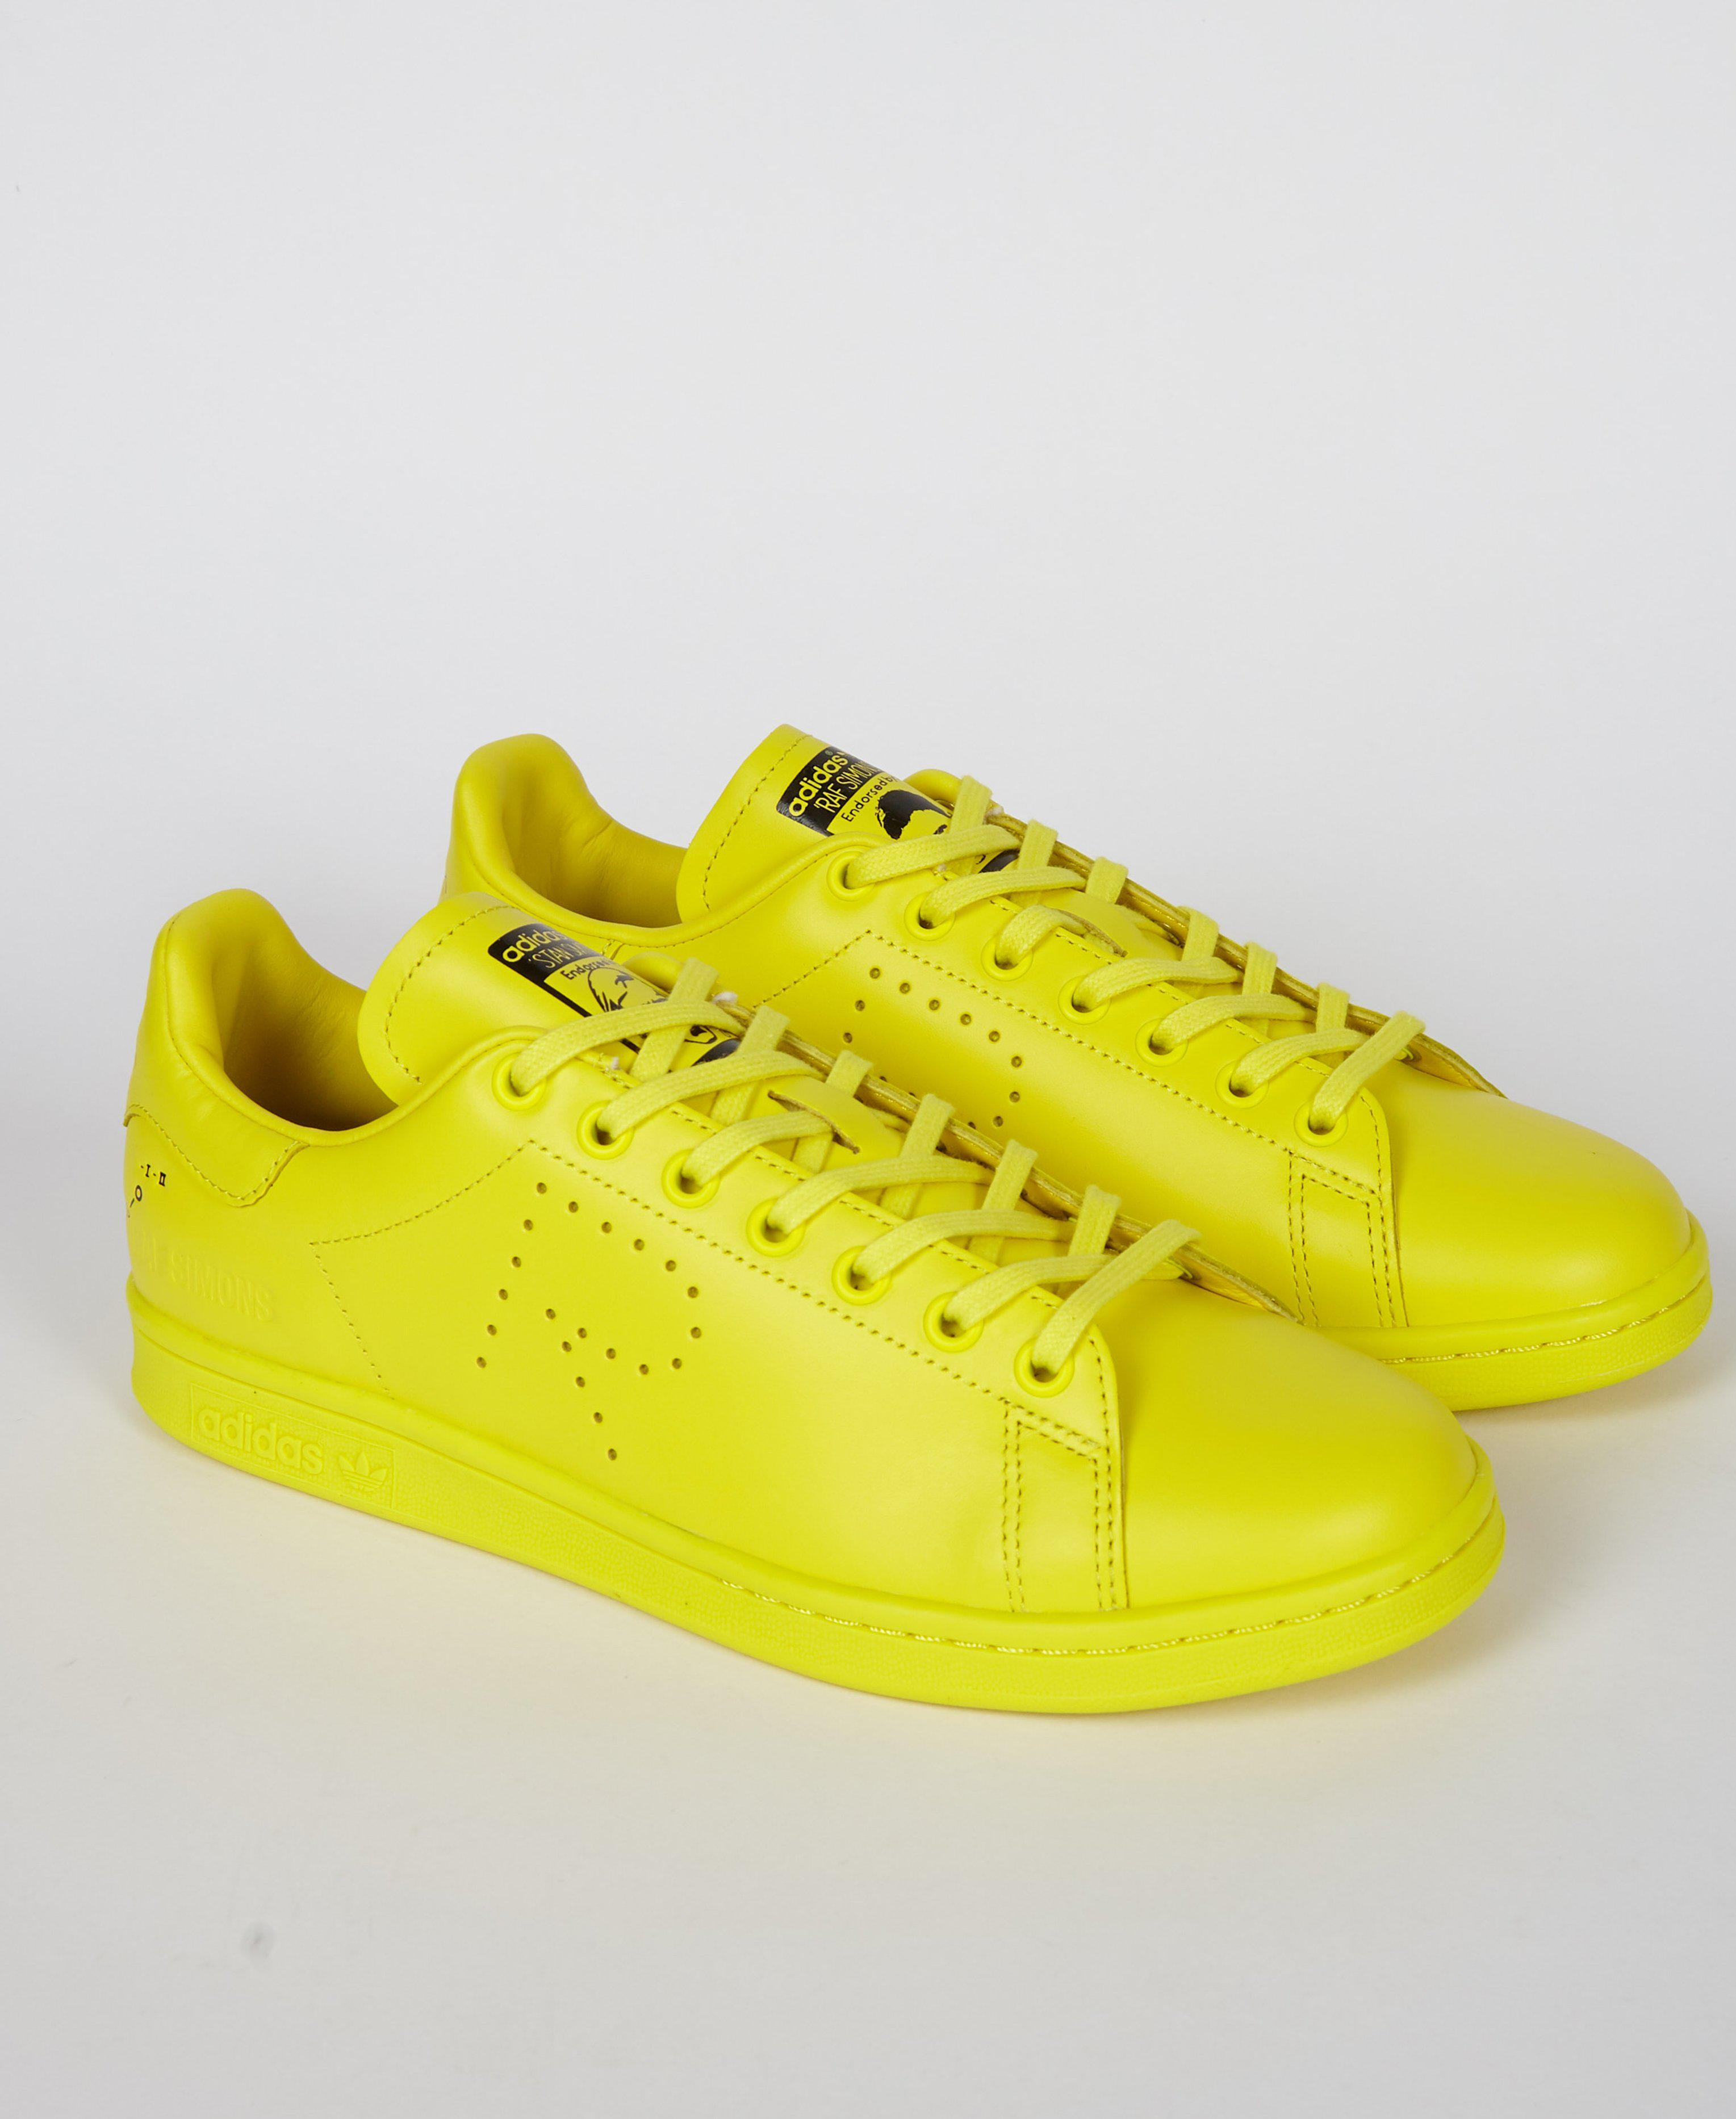 buy popular 27f84 51876 ... buying now Lyst - Adidas By Raf Simons Rs Stan Smith F34259 in Yellow  for Men ...